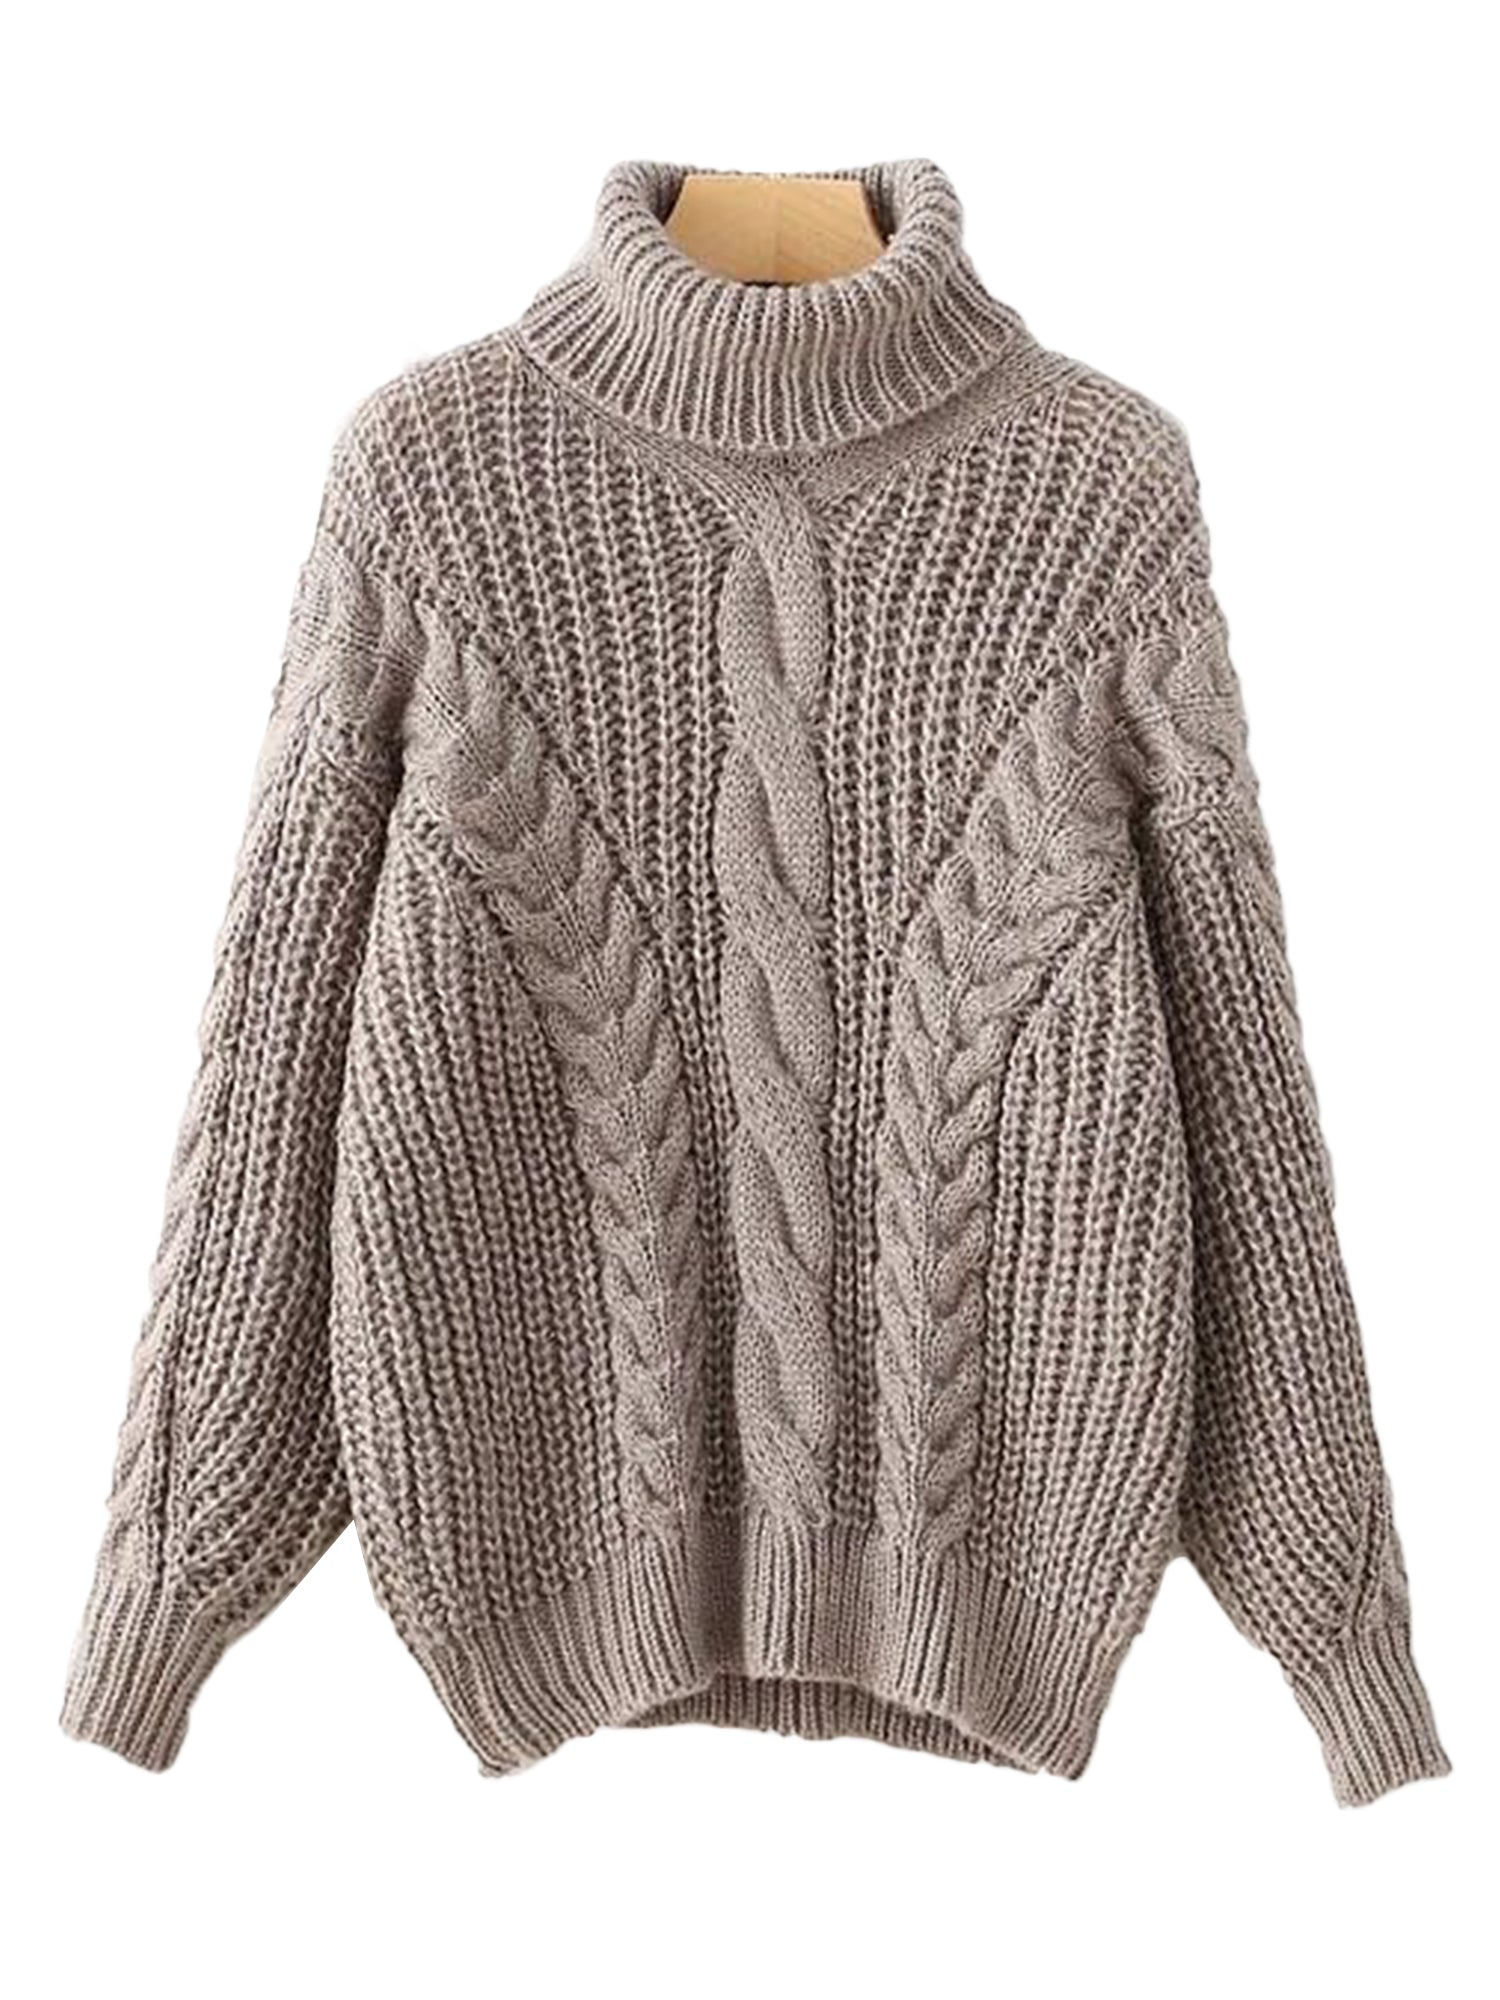 'Monique' Chunky Cable Knit Turtleneck Sweater (5 Colors)